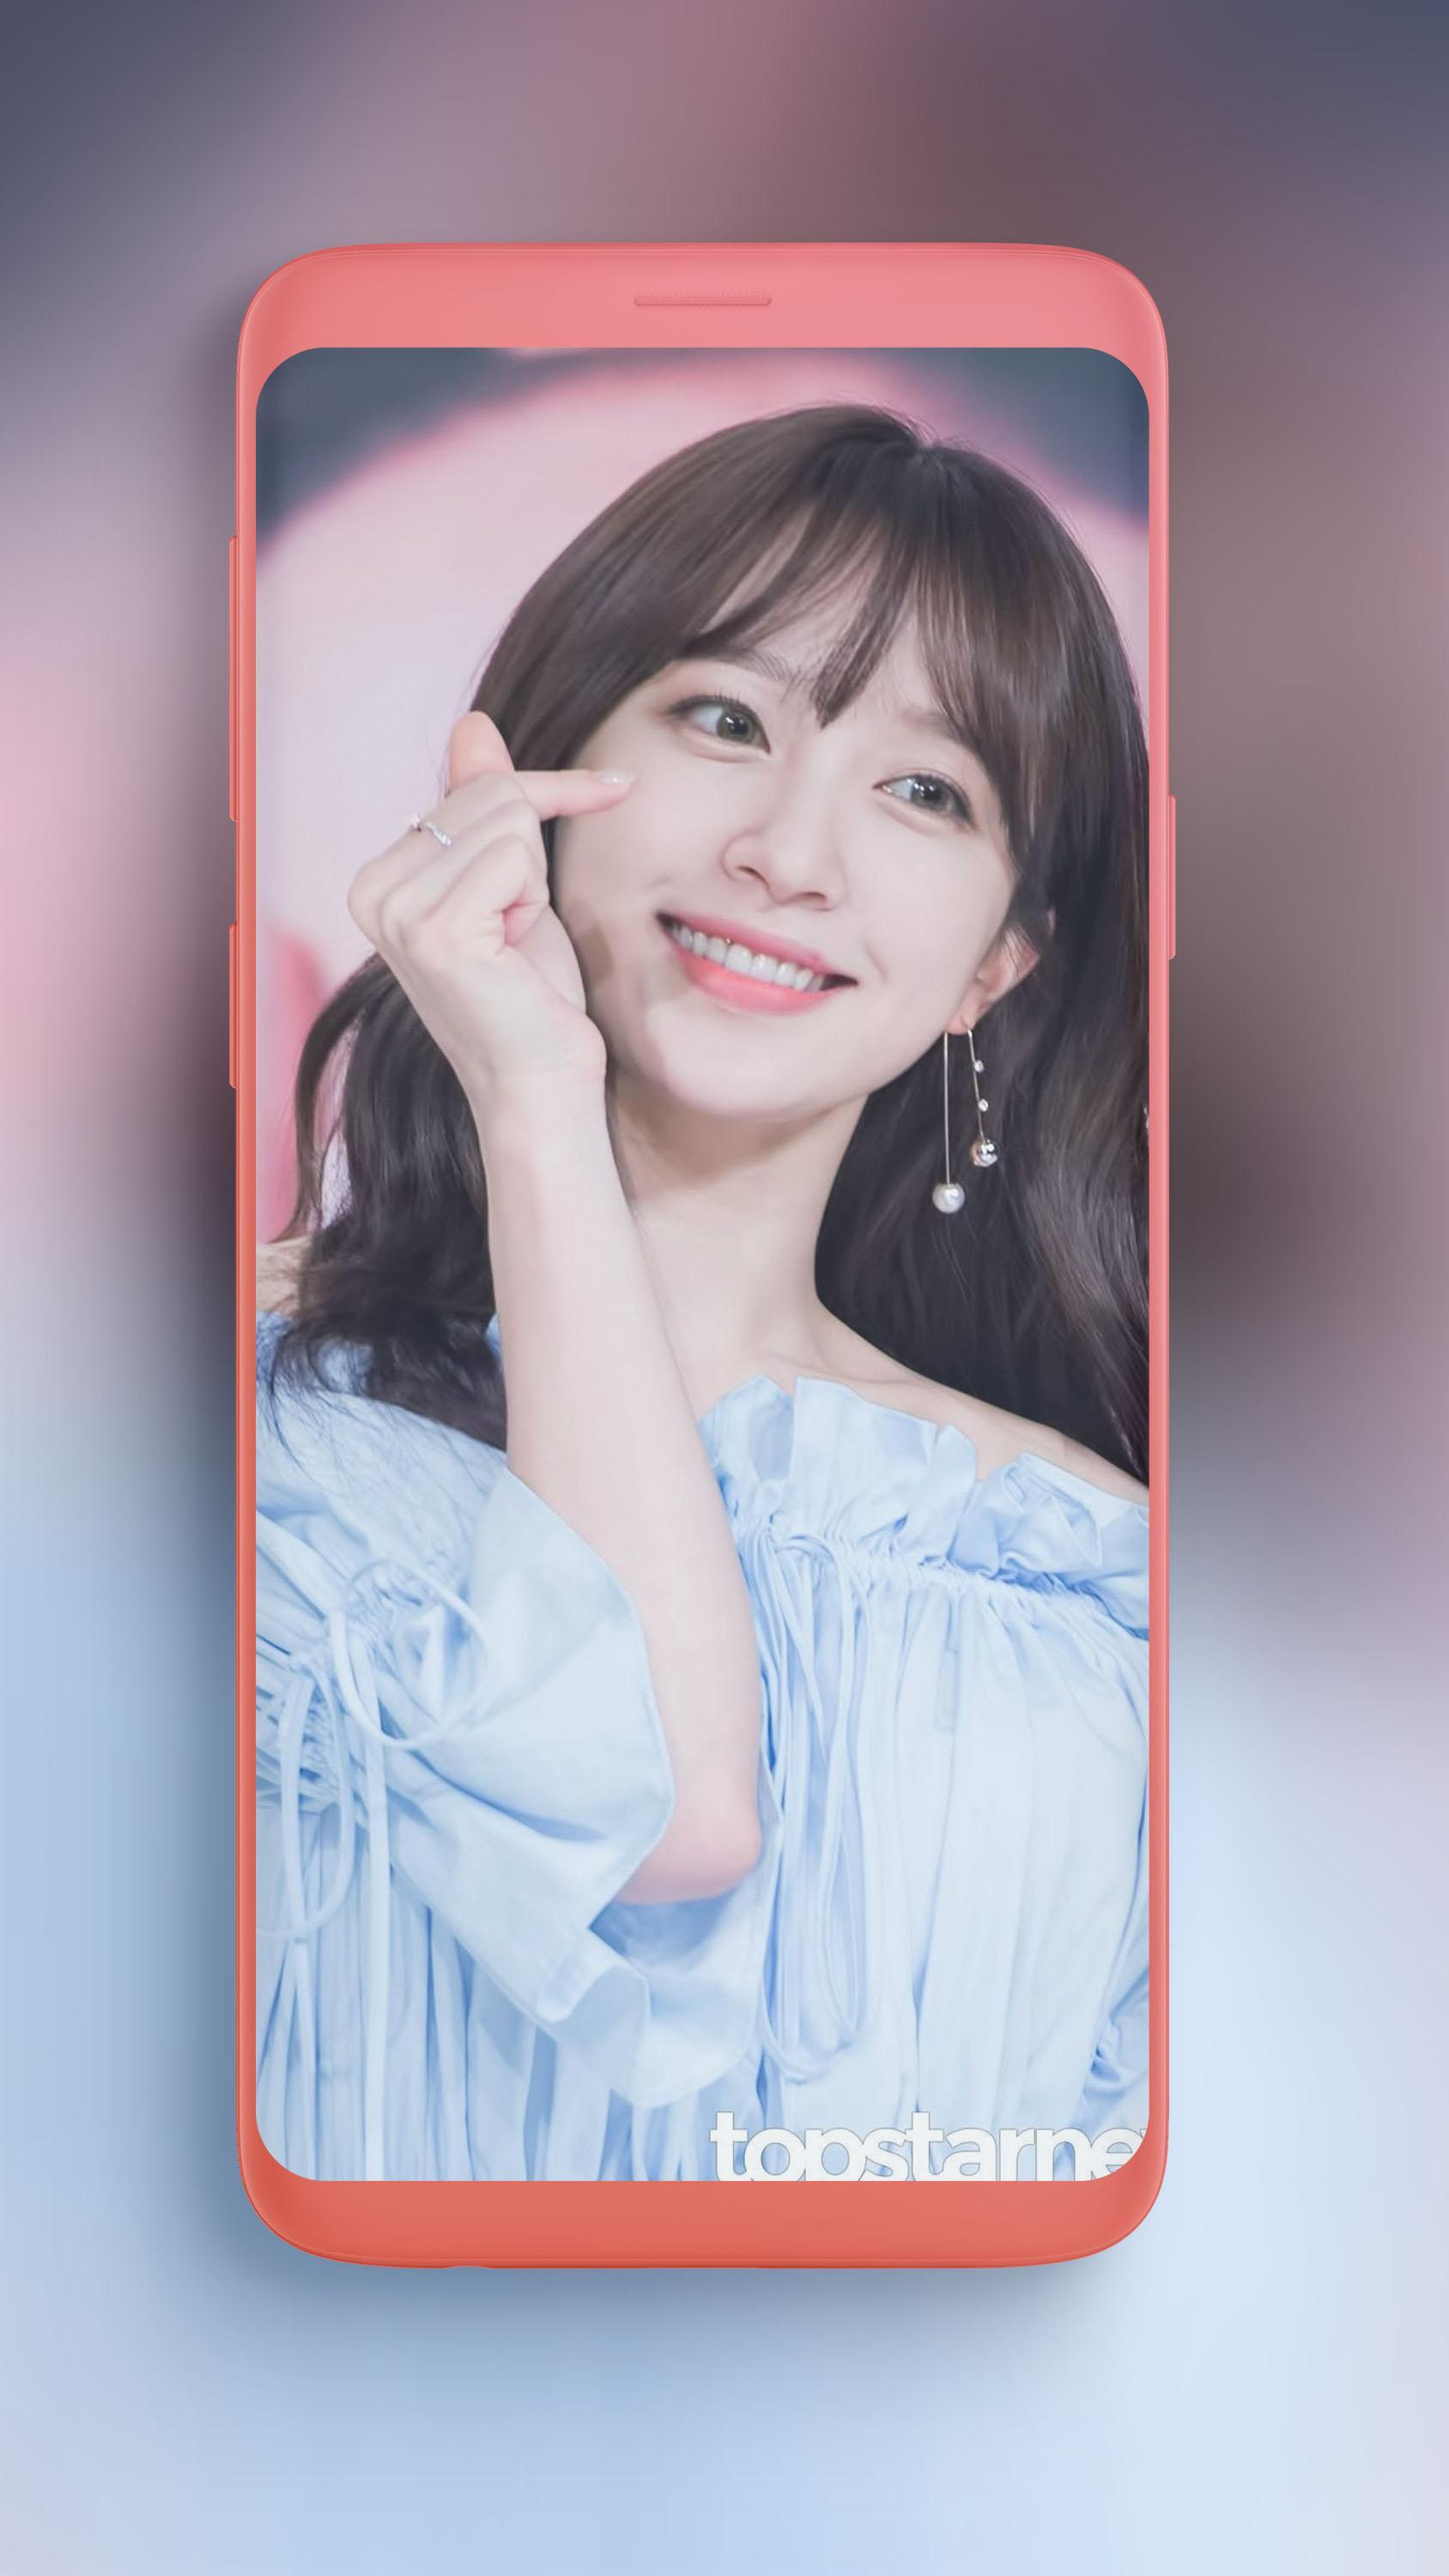 Exid Hani Wallpaper Kpop Hd New For Android Apk Download